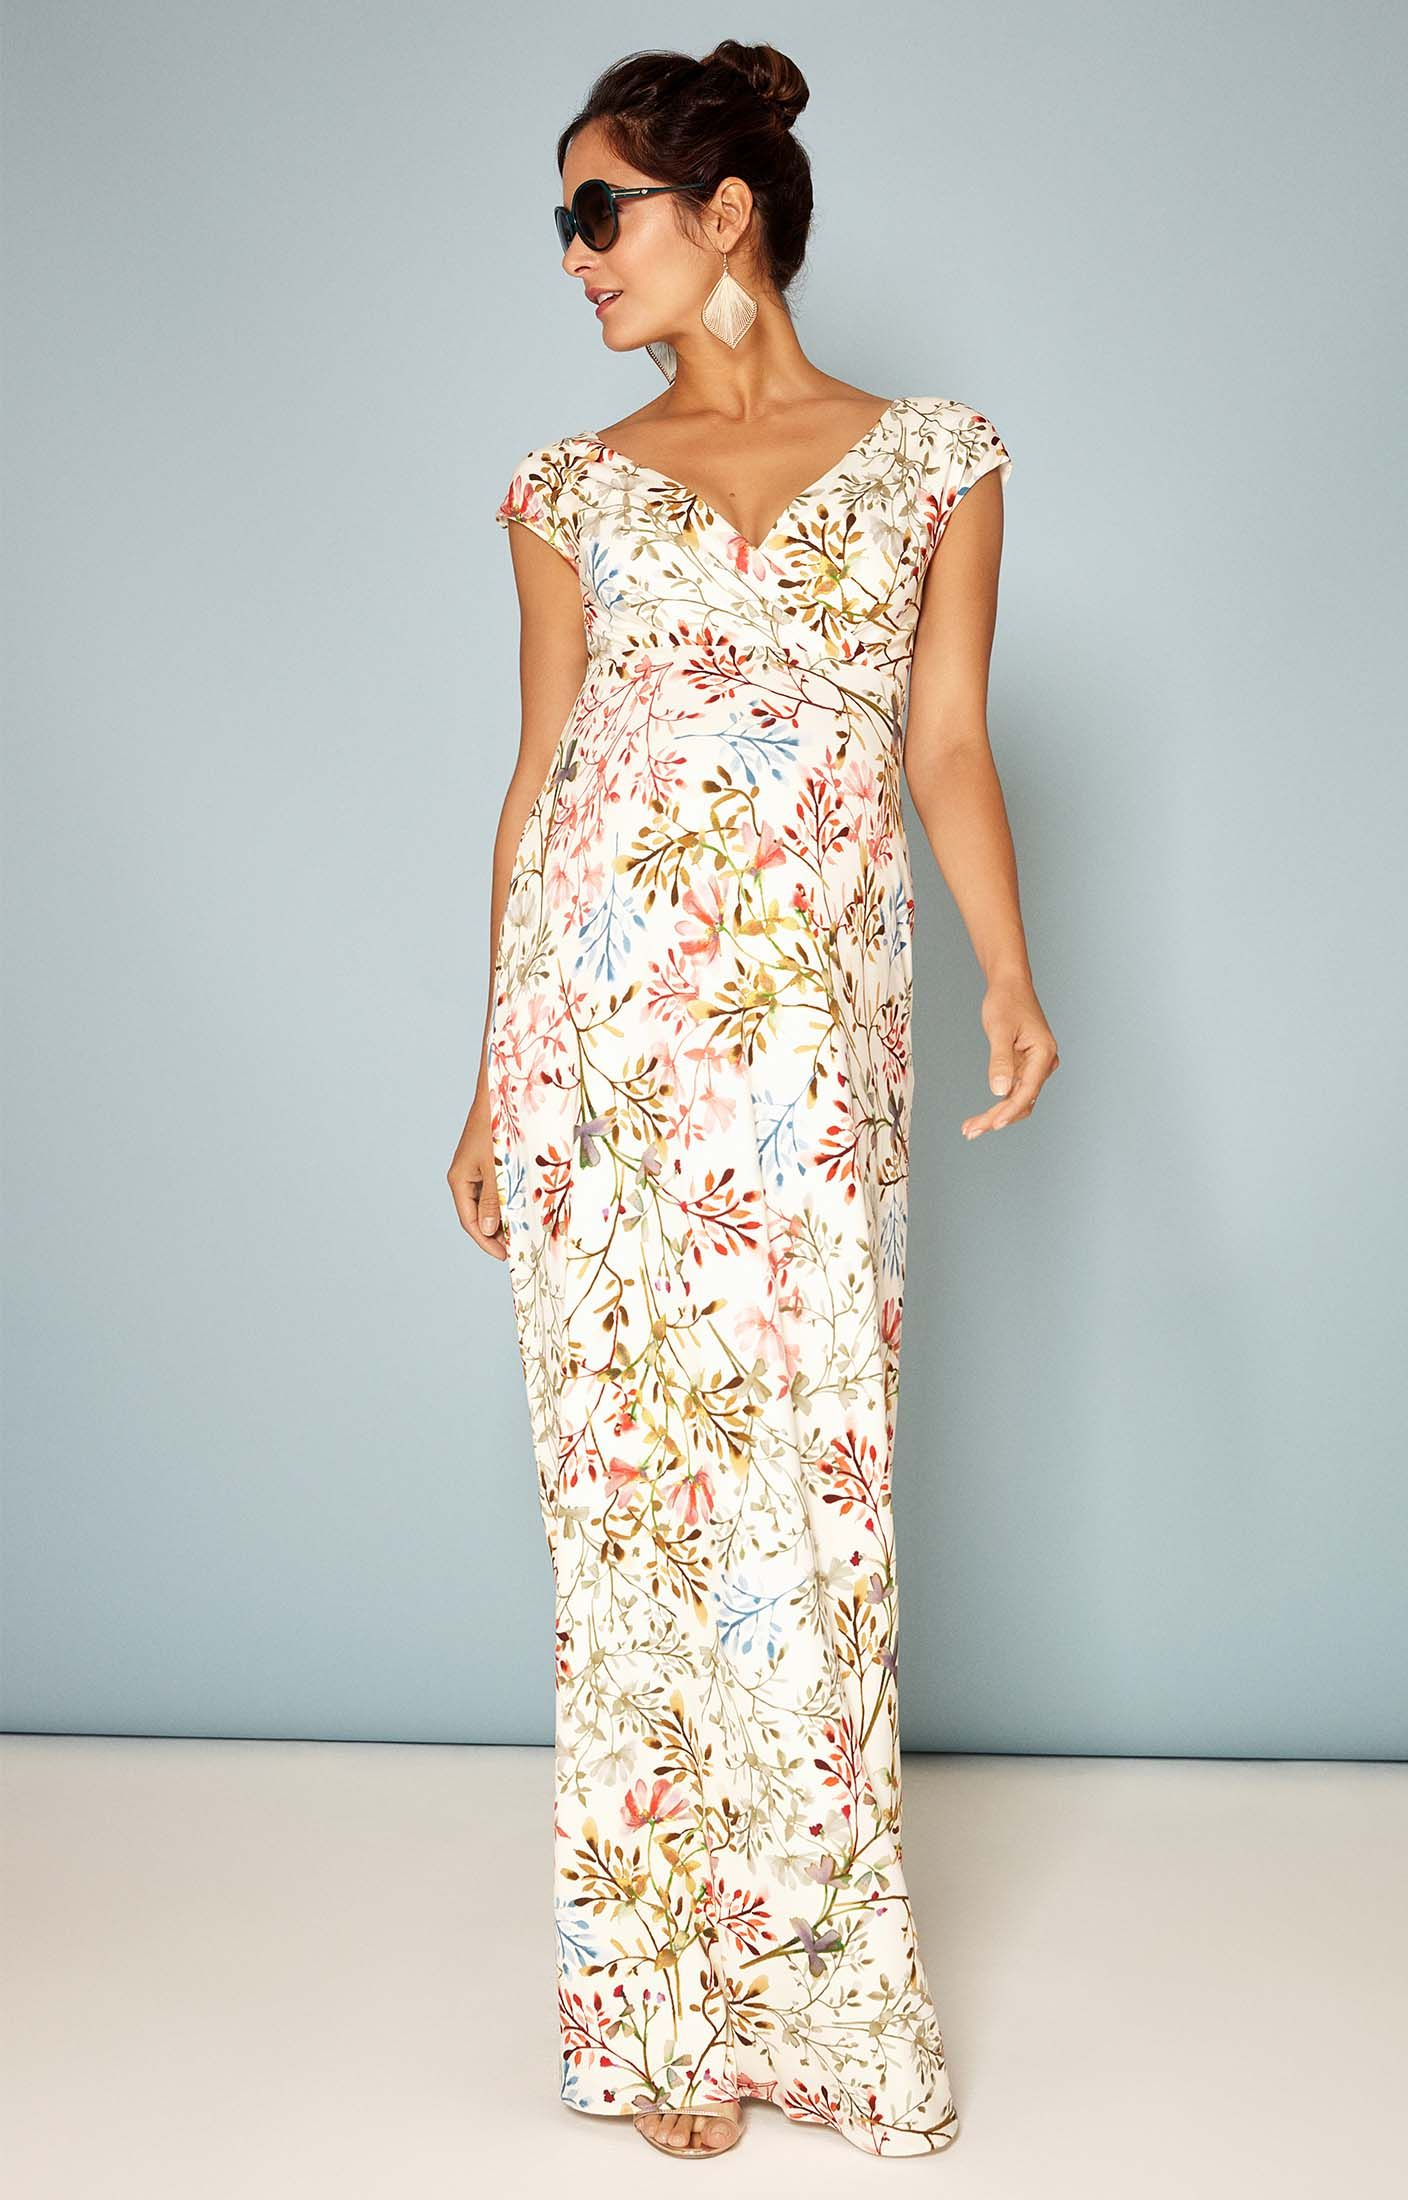 ae2adbcc9f53 Our ever-popular Alana Maxi Dress is reintroduced in this new